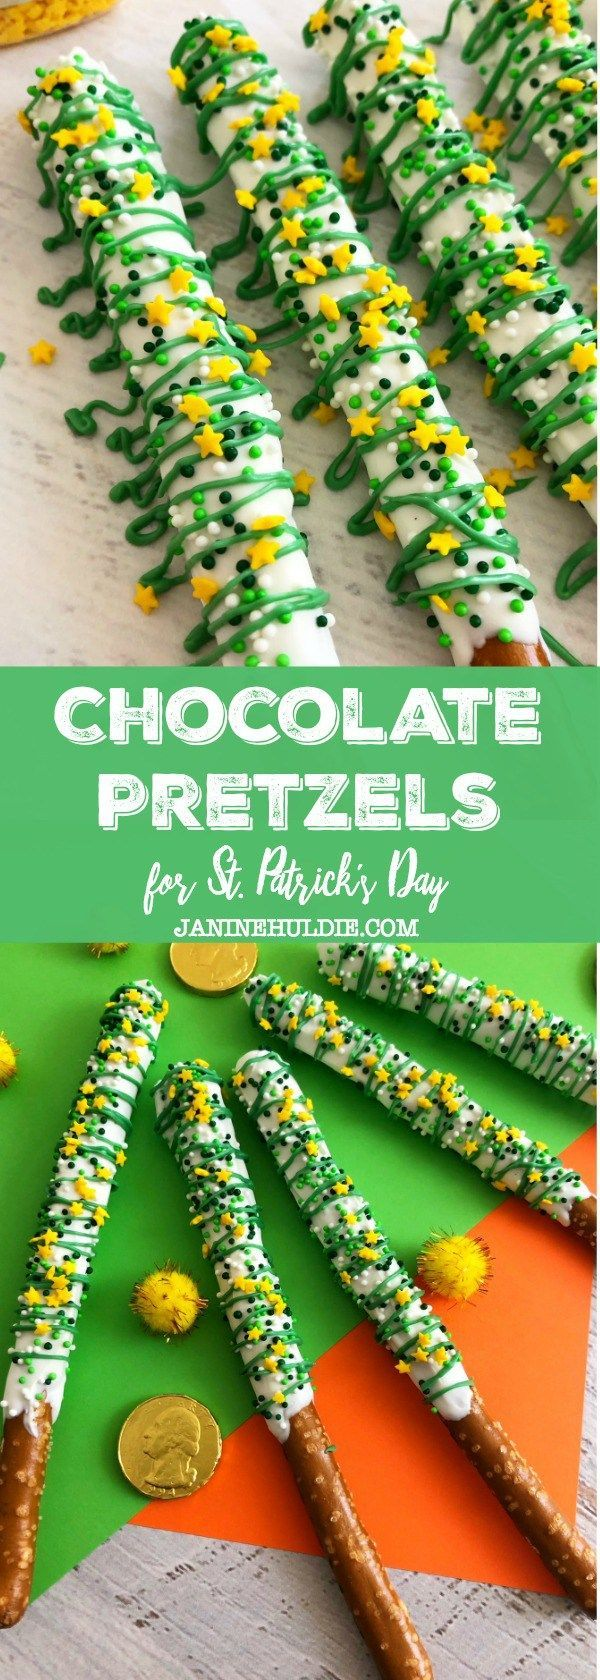 Festive St. Patrick's Day White and Green Chocolate Covered Pretzels Recipe